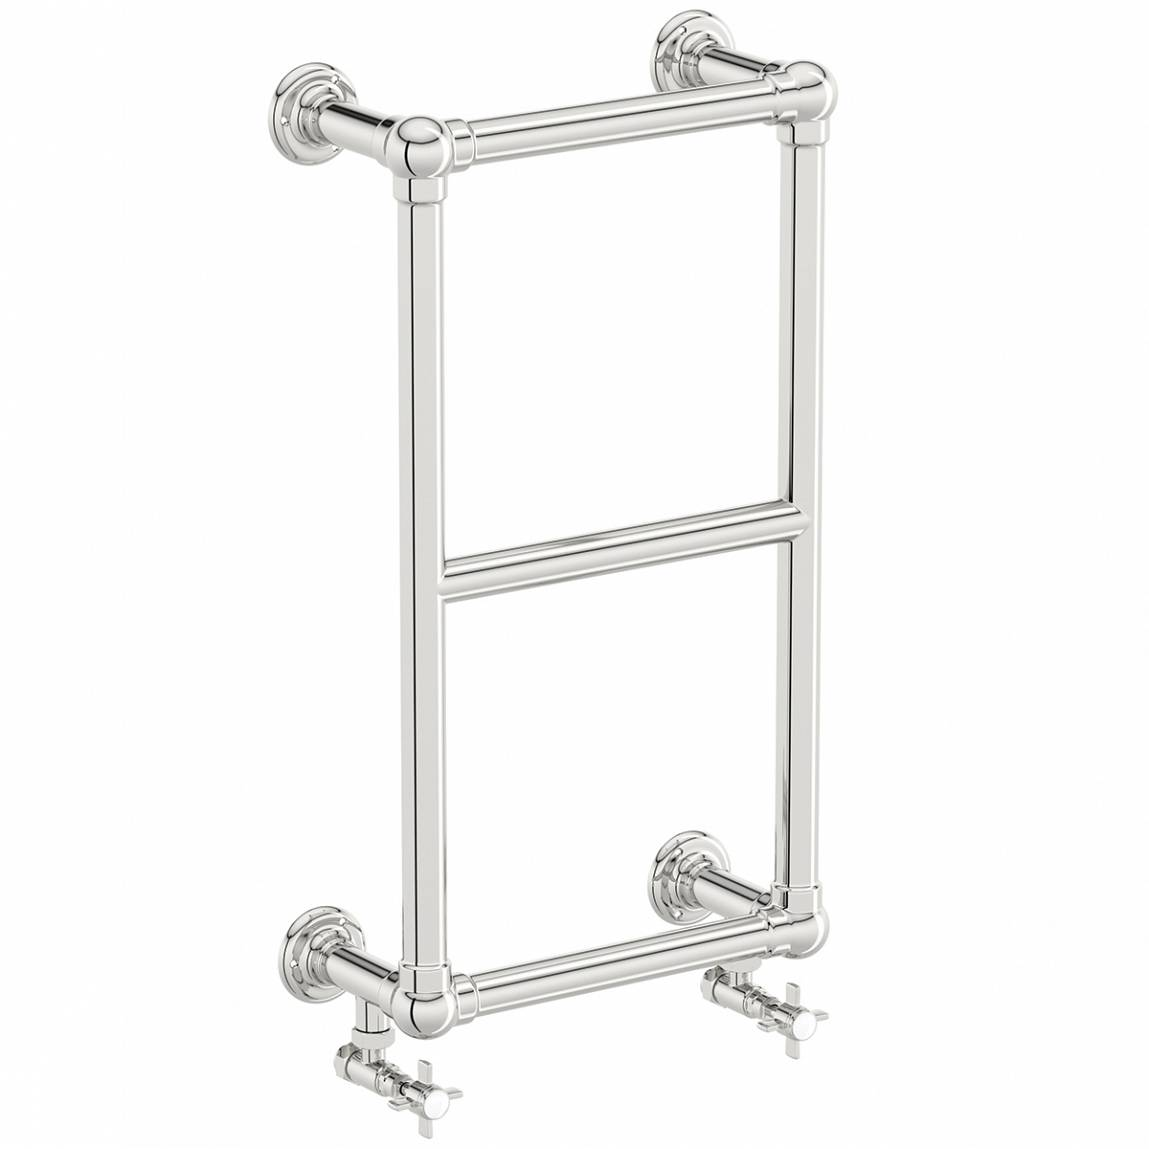 Image of Dorchester Heated Towel Rail PLUS Valves